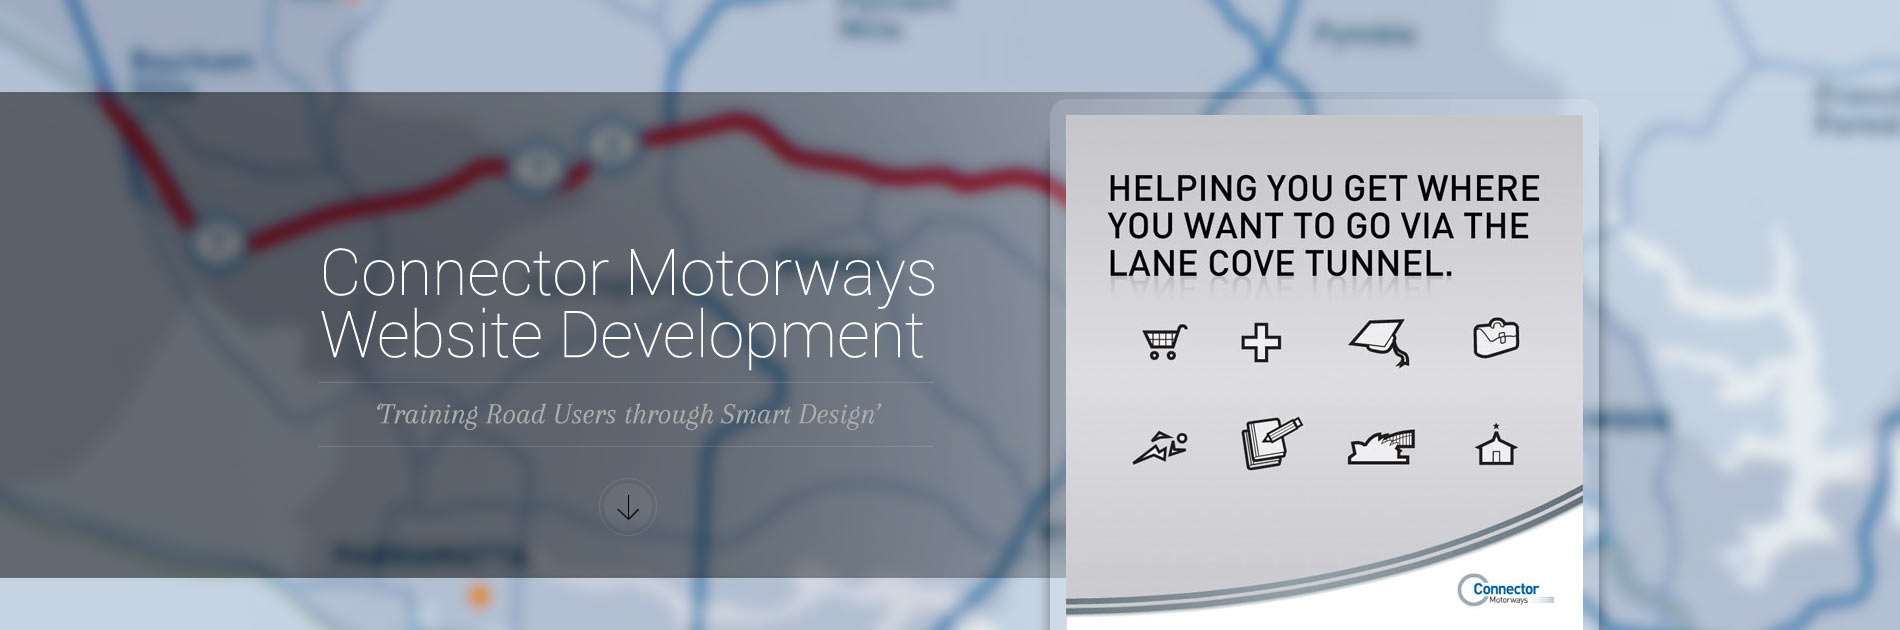 Connector Motorways Website Development